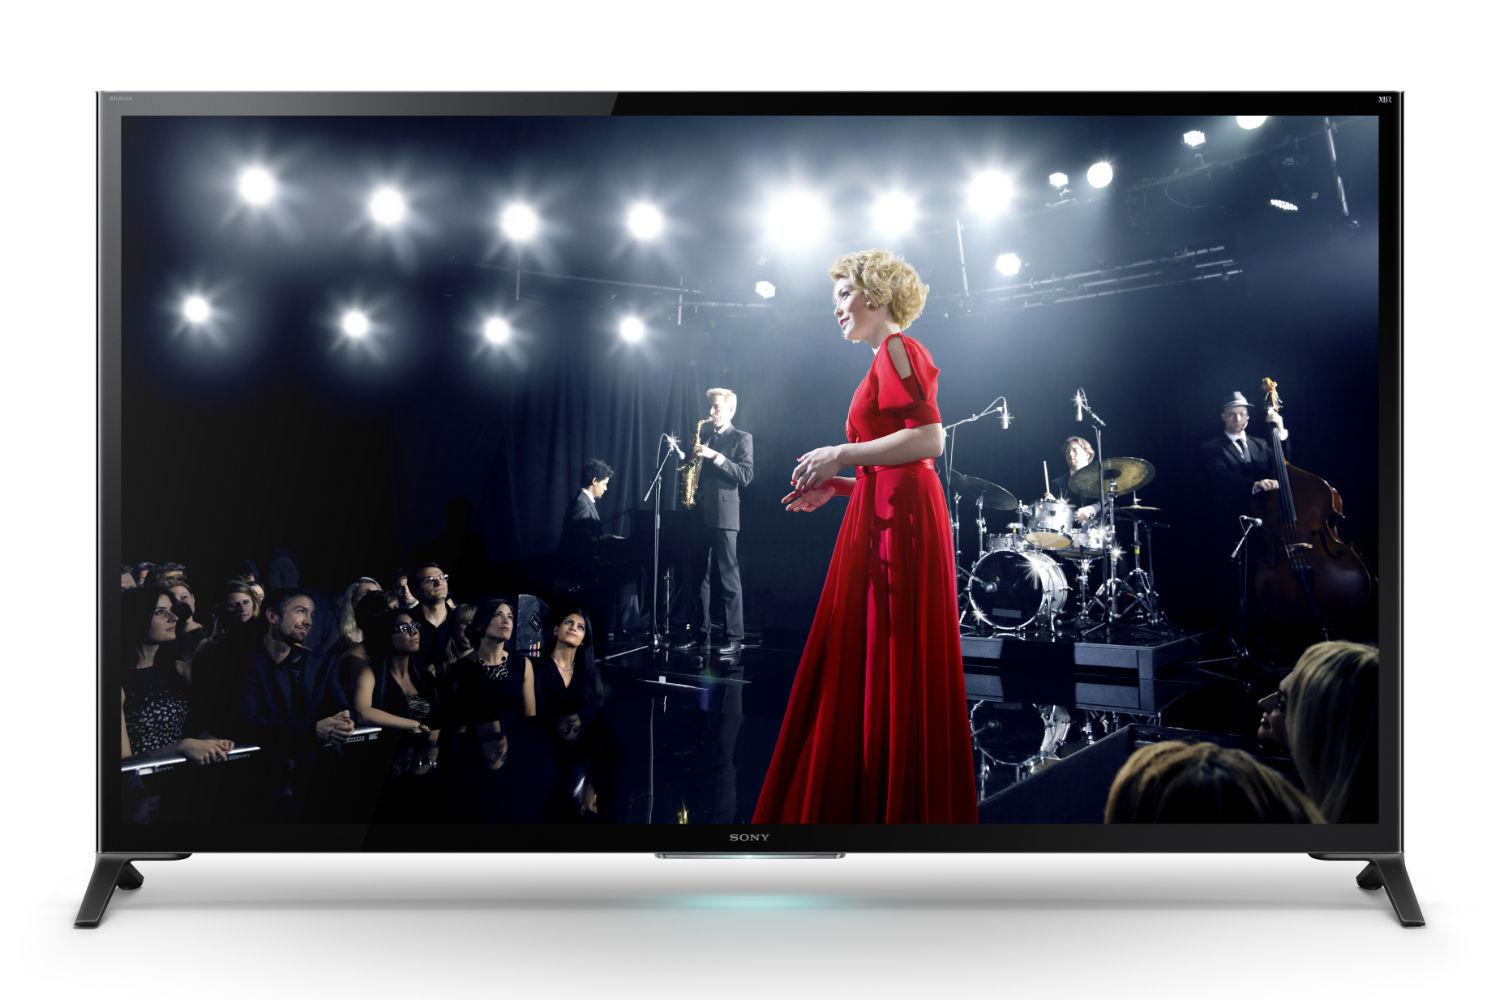 sony drops three new 4k tv series at ces answers content. Black Bedroom Furniture Sets. Home Design Ideas